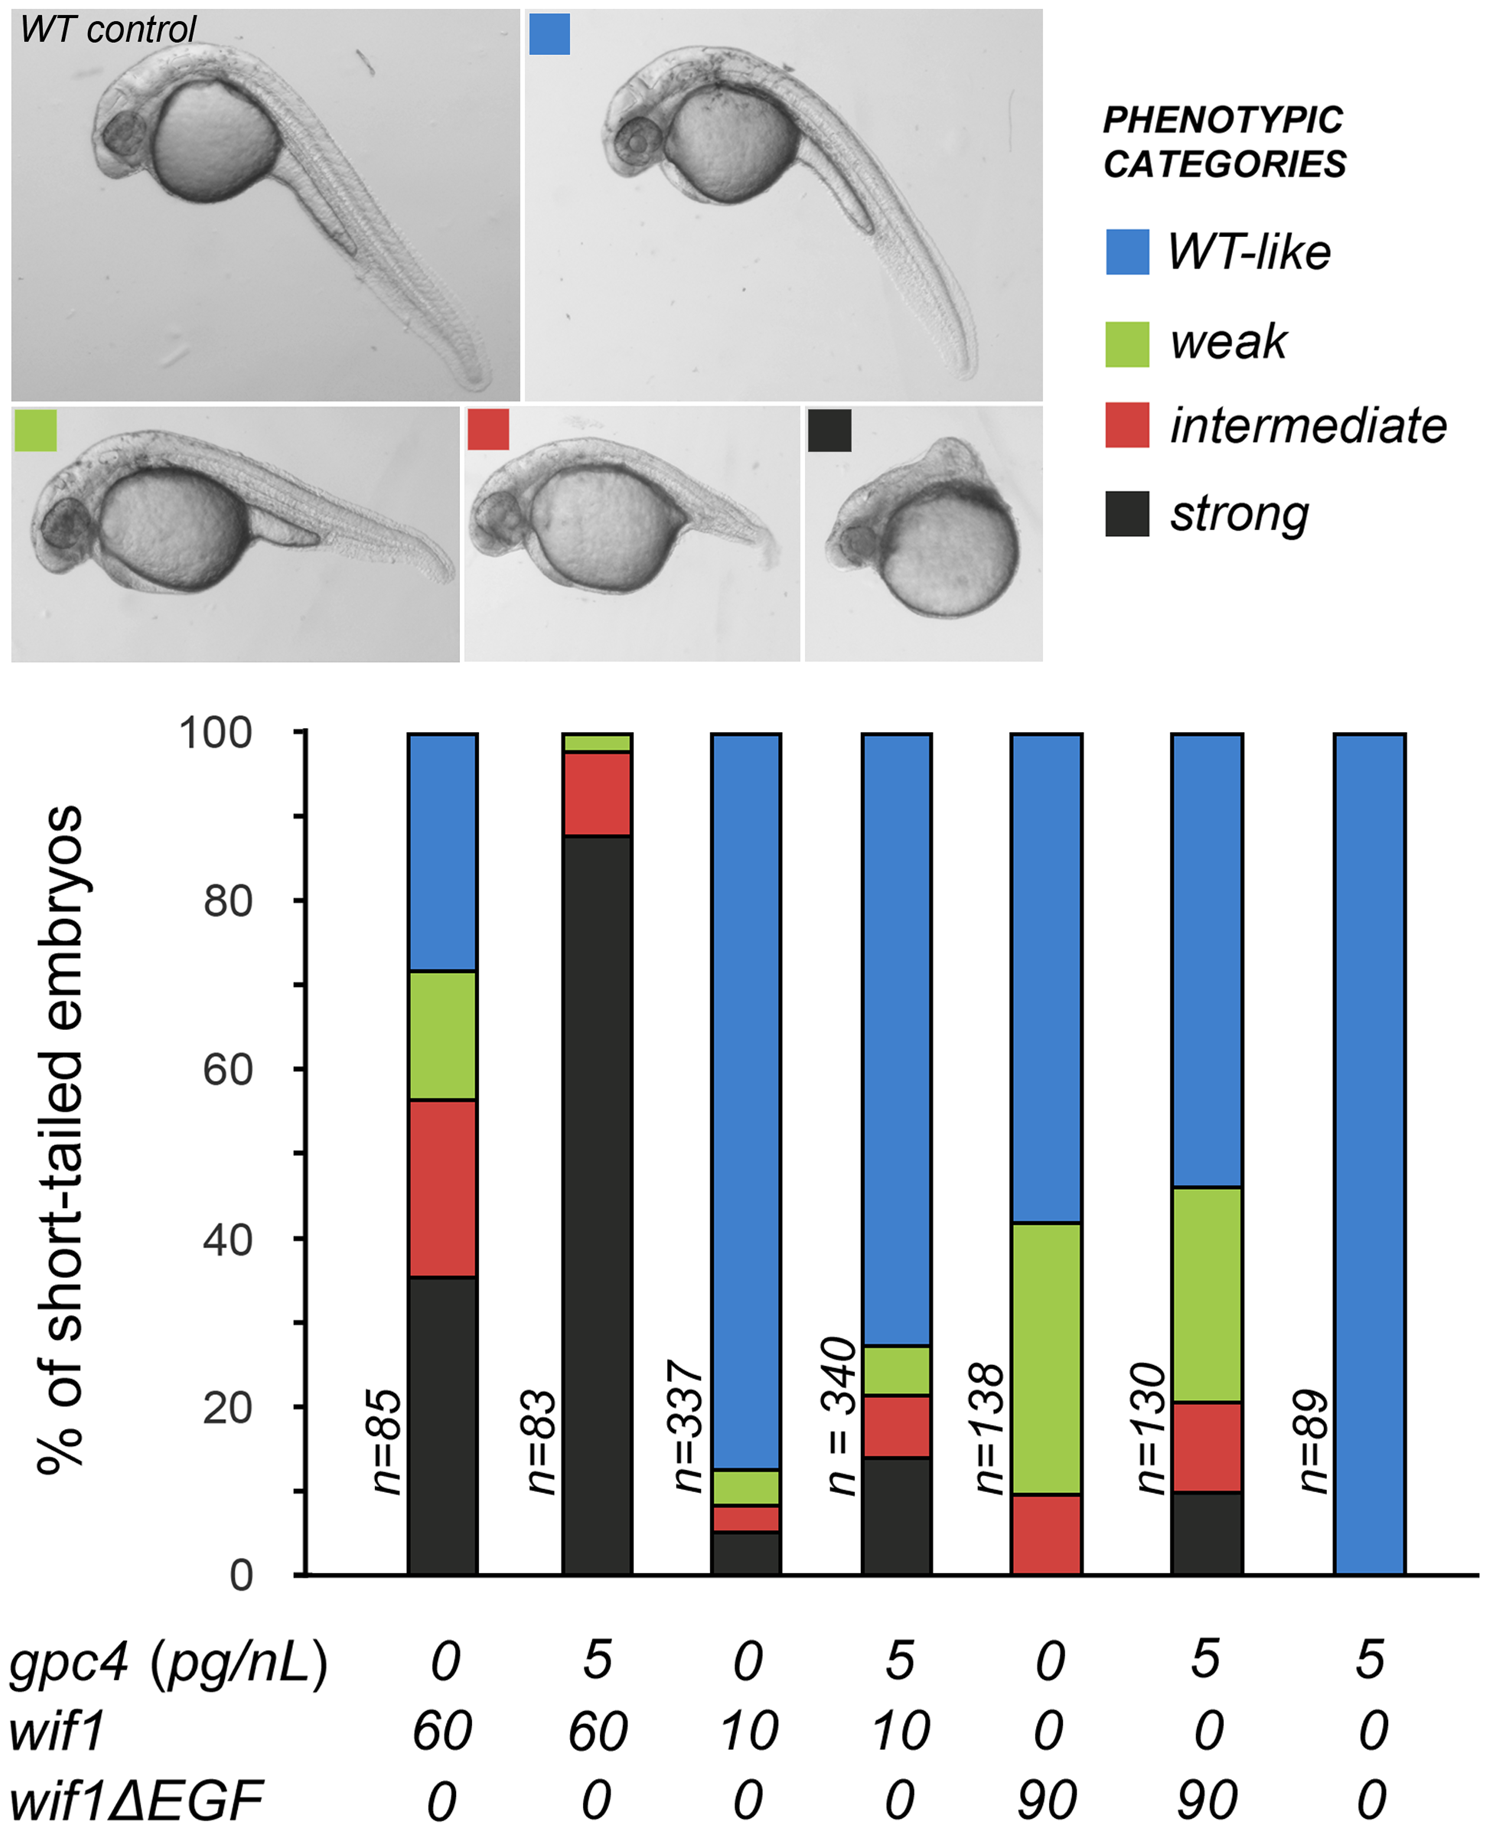 Gpc4 enhances the effects of full-length Wif1 in zebrafish embryos.